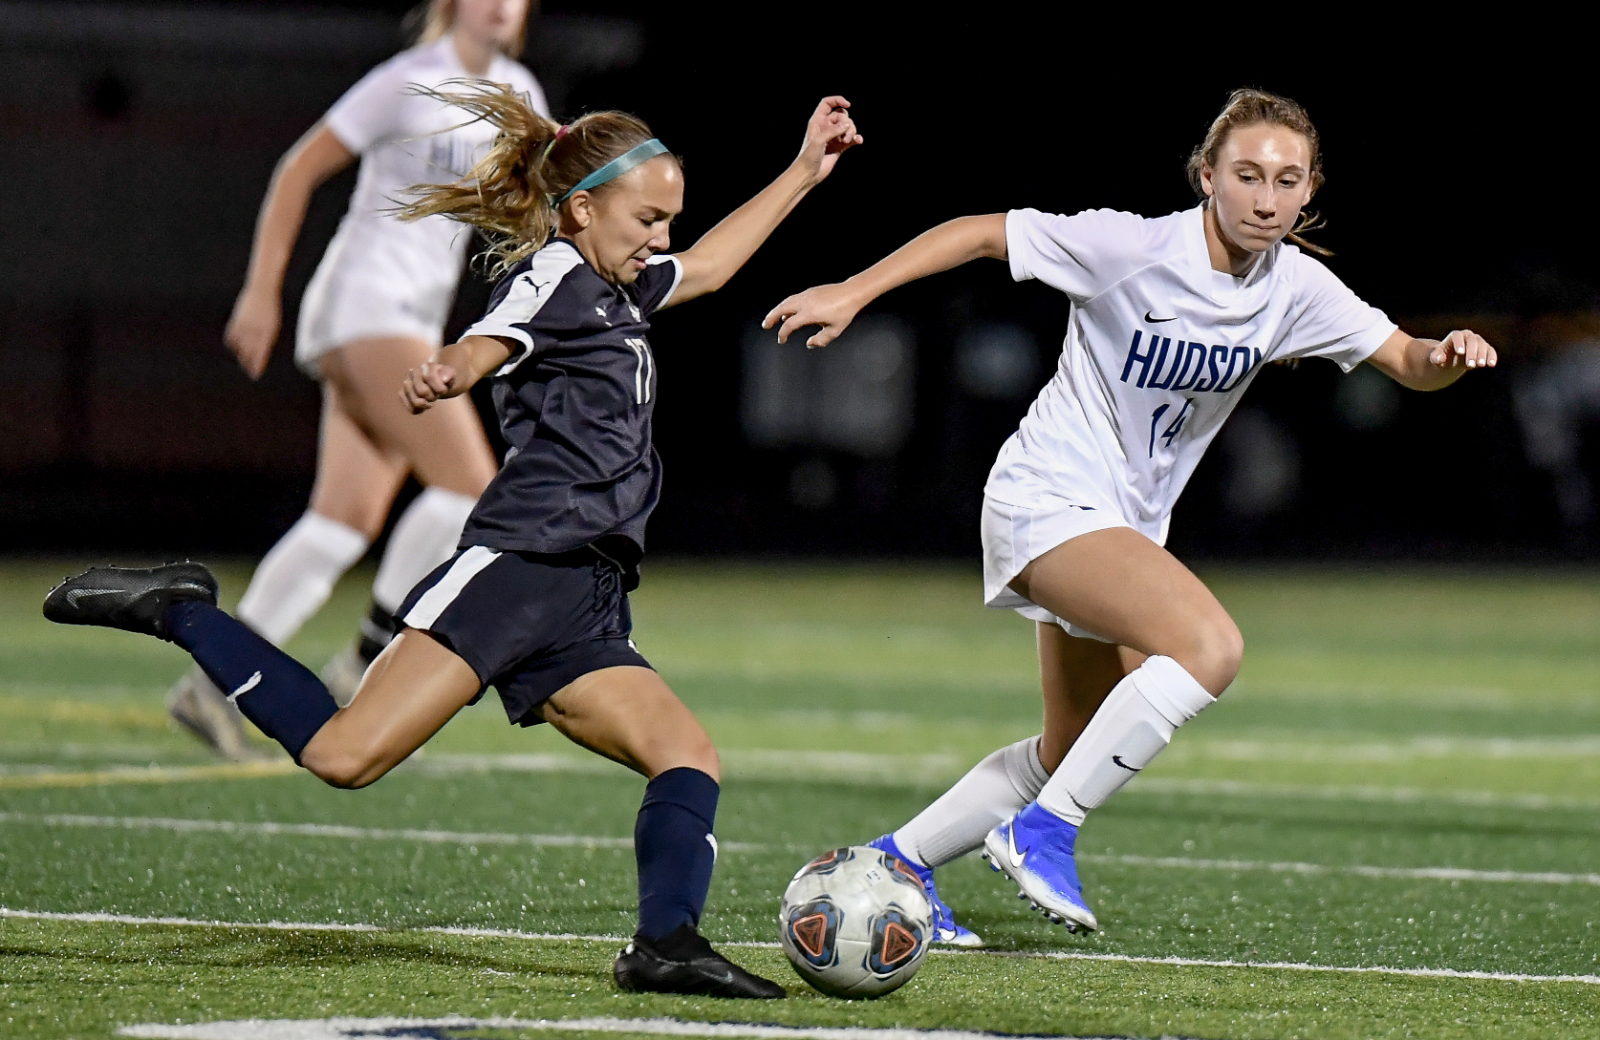 Images From Hudson Girls Soccer @ Twinsburg